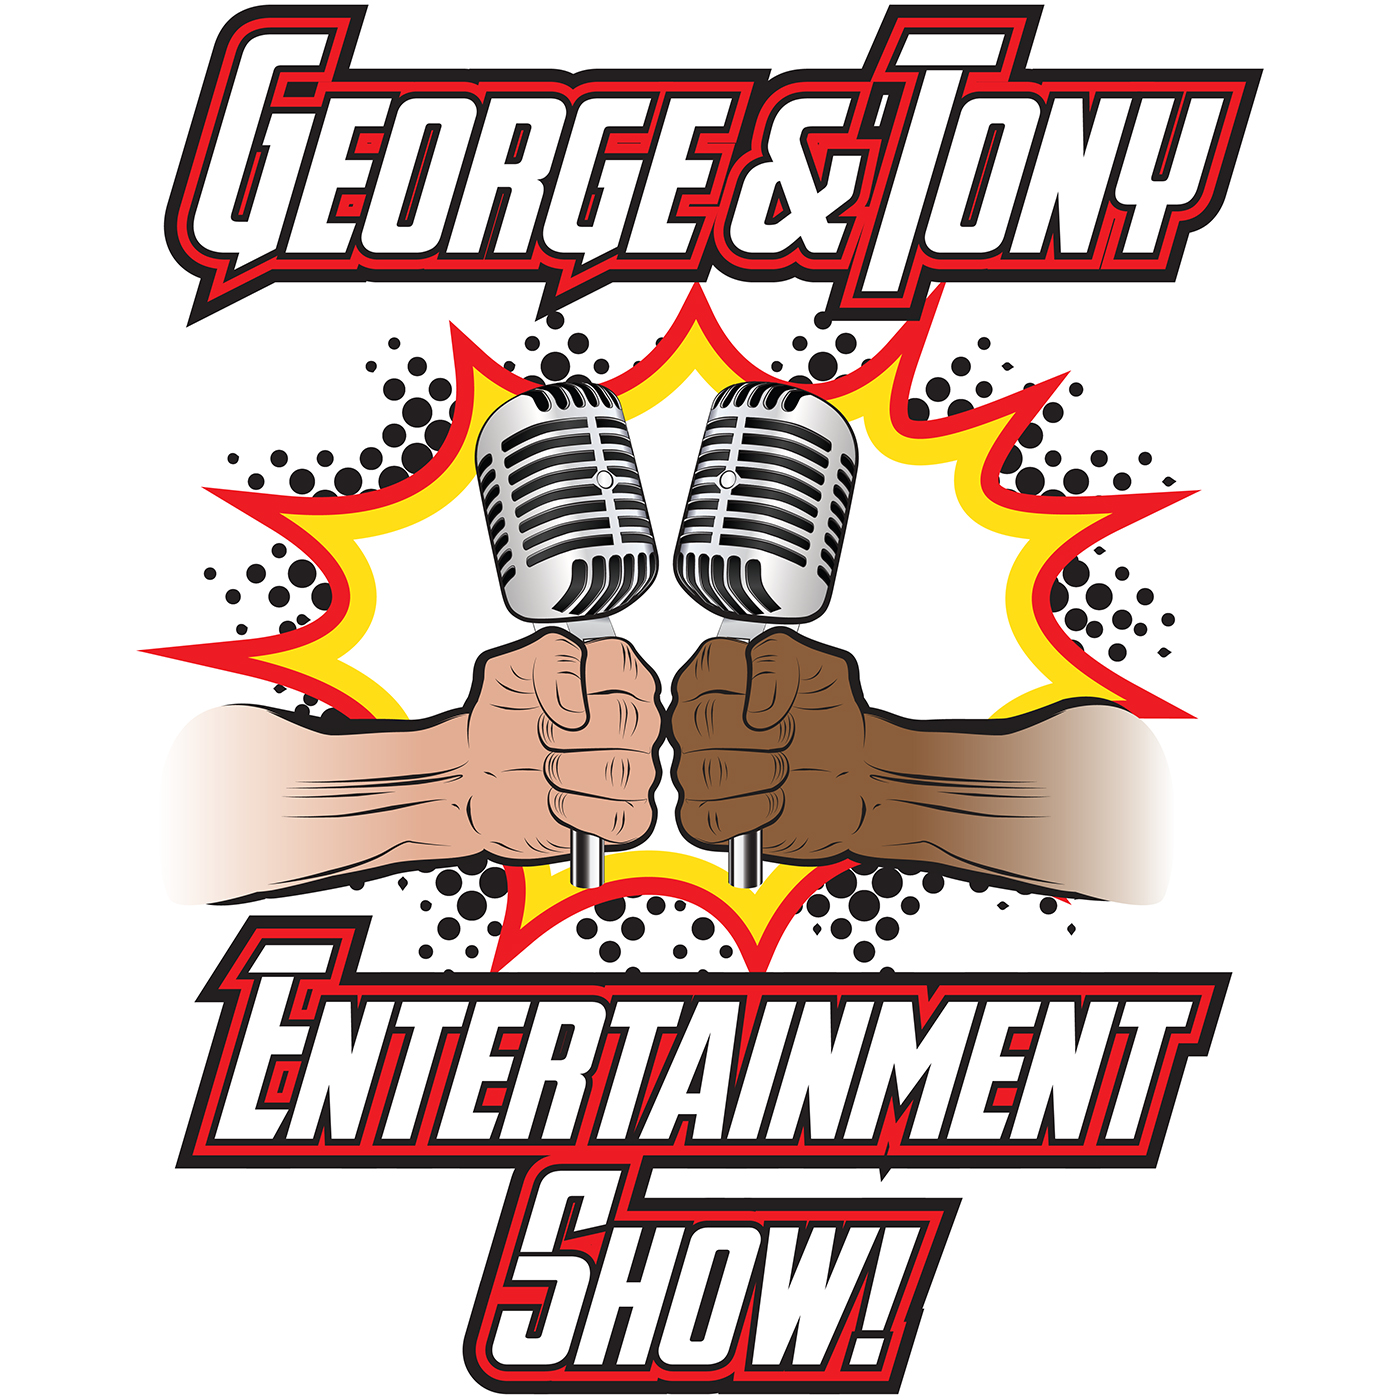 George and Tony Entertainment Show #5